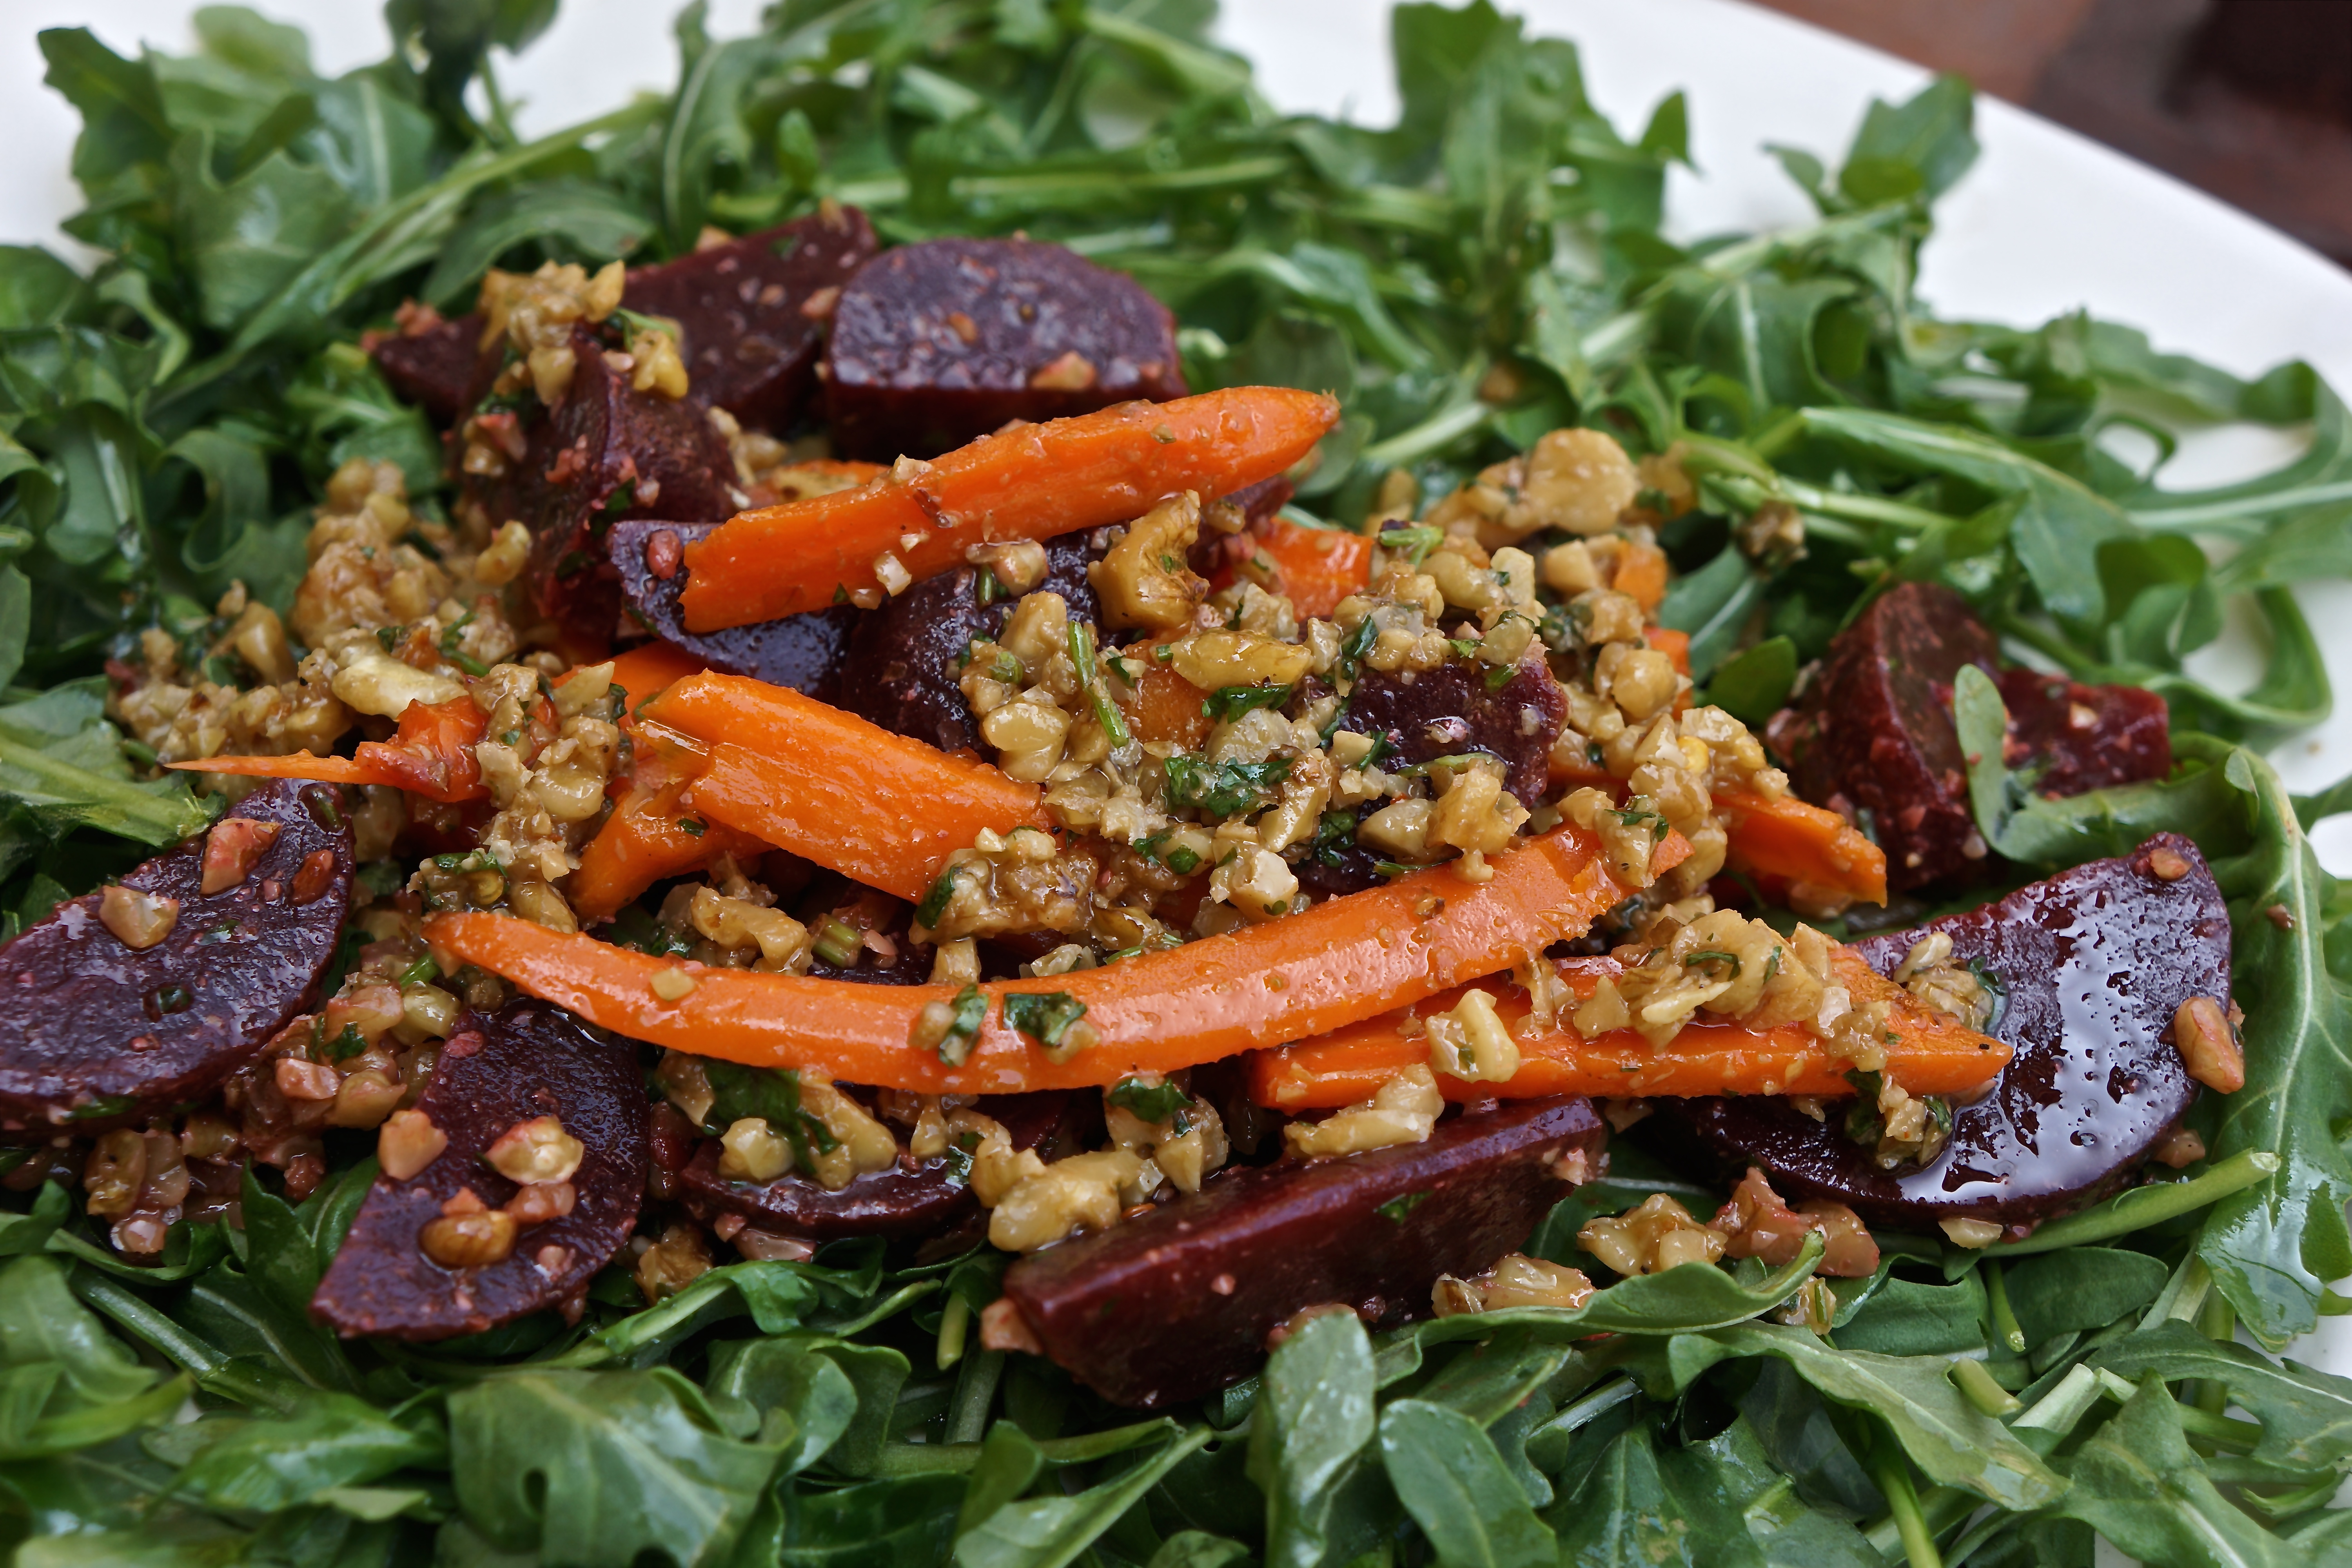 Spicy Walnut, Beet & Carrot Salad